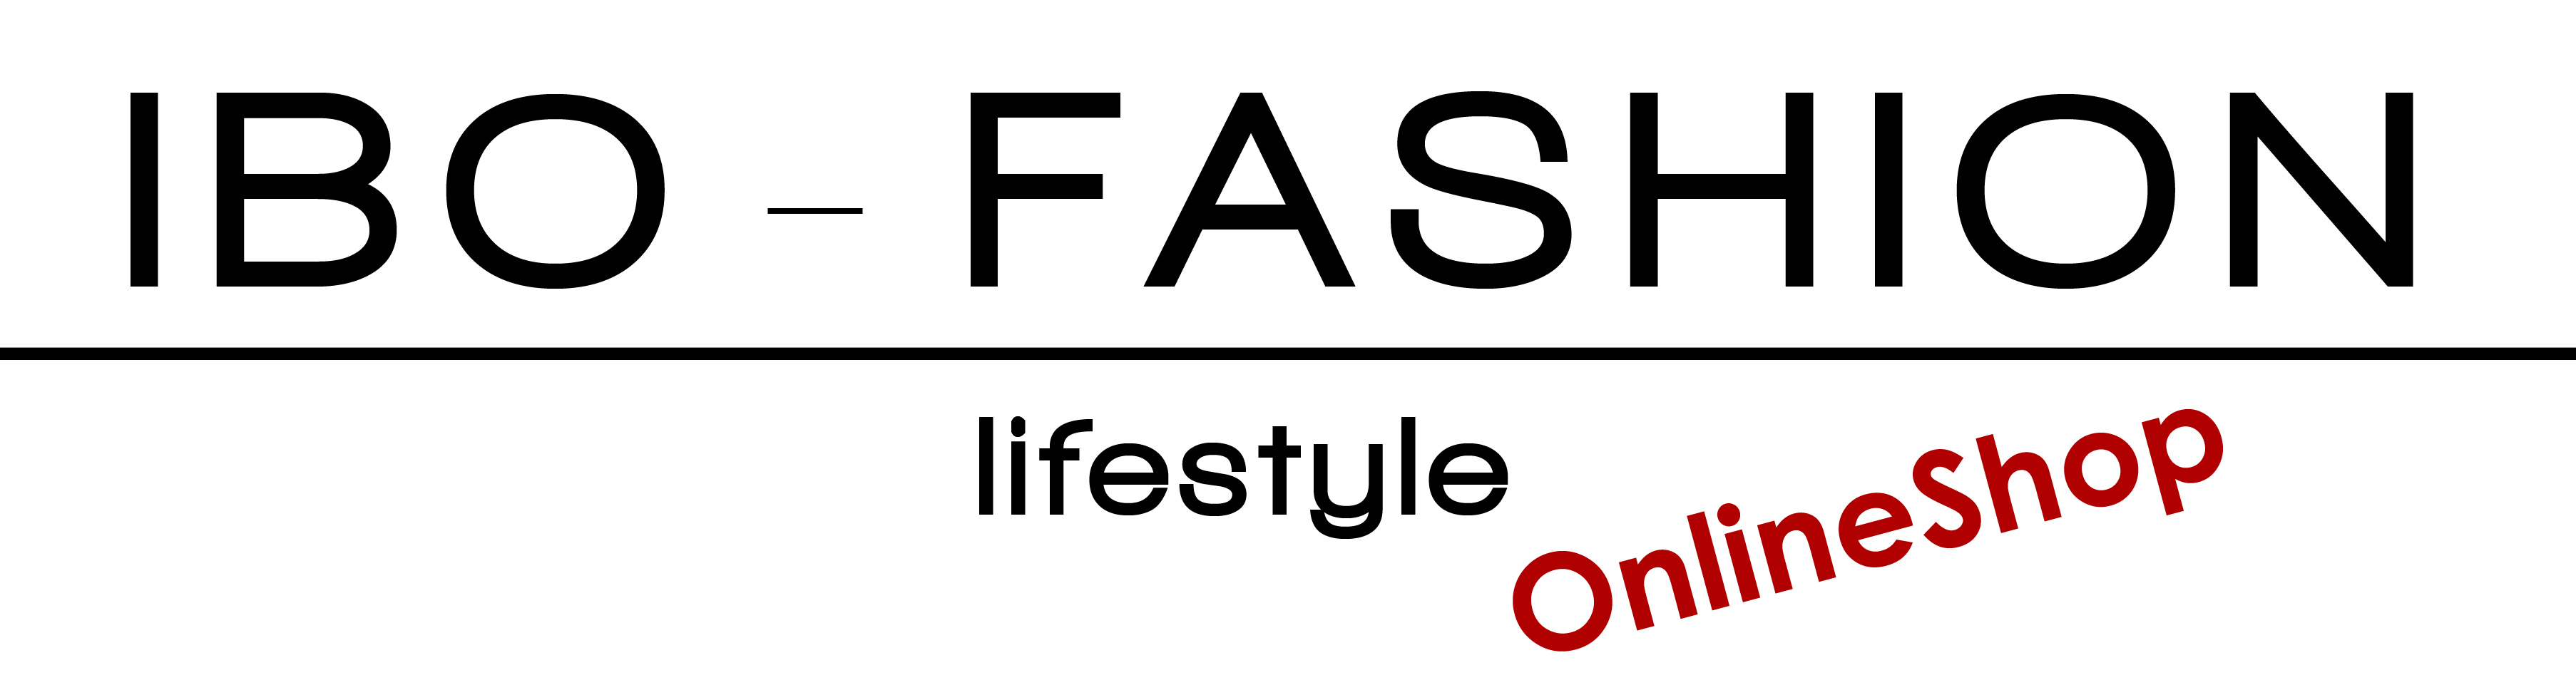 IBO FASHION - lifestyle- Onlineshop